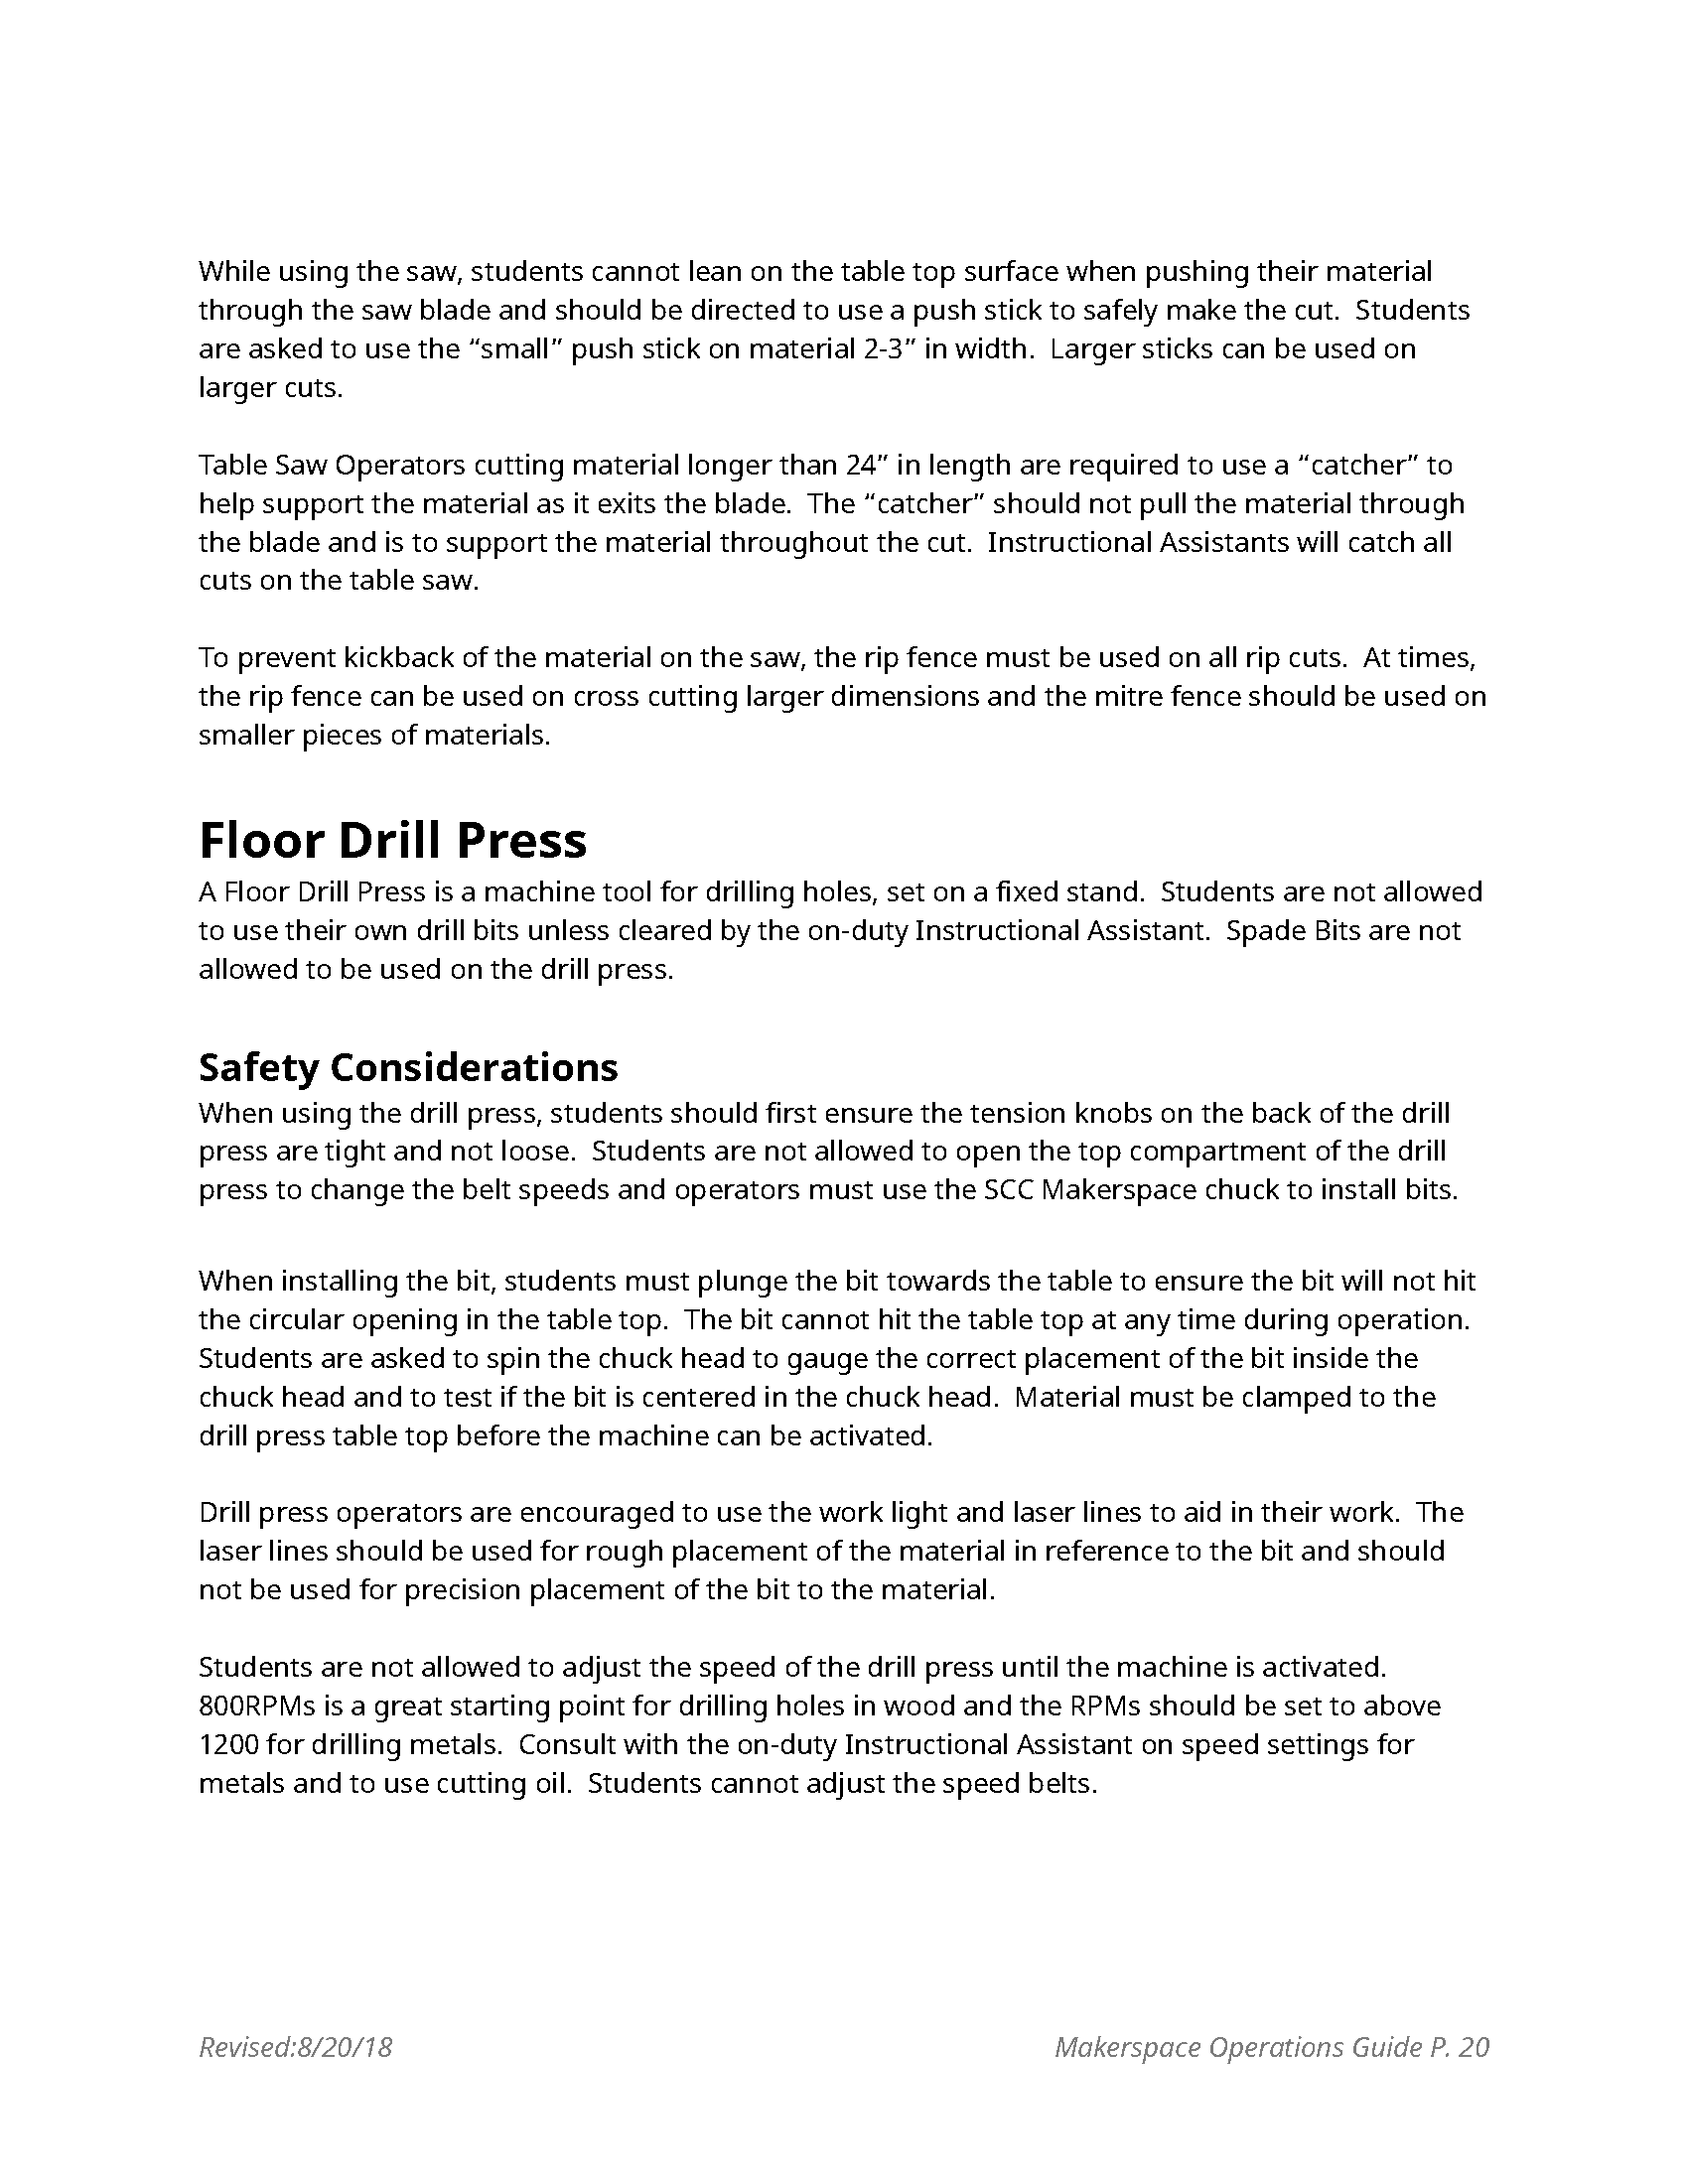 ms_ops_manual_8-20_Page_20.png